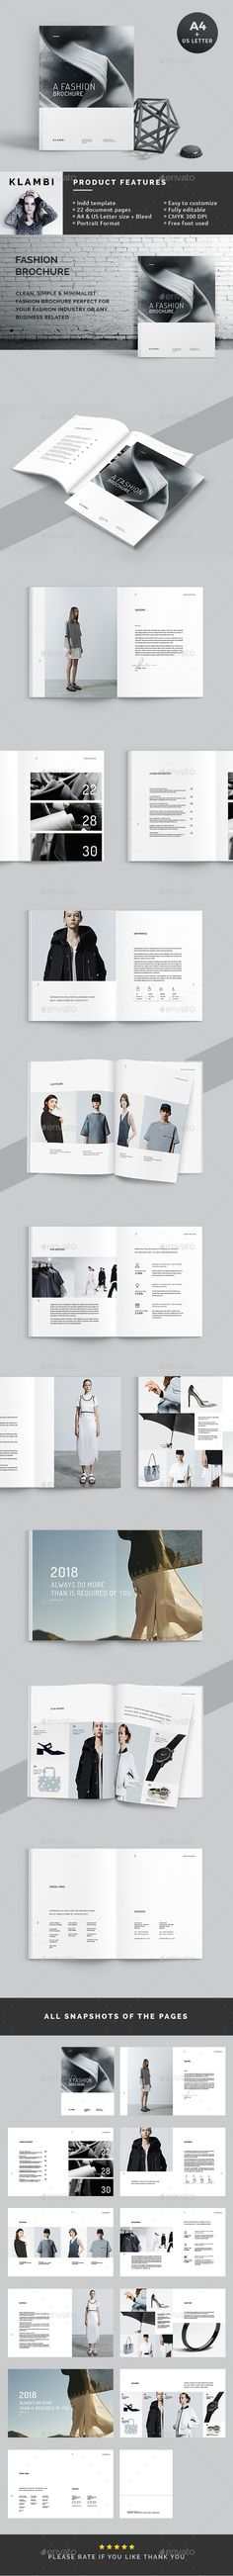 Company Profile Brochure Template  Company Profile Brochure